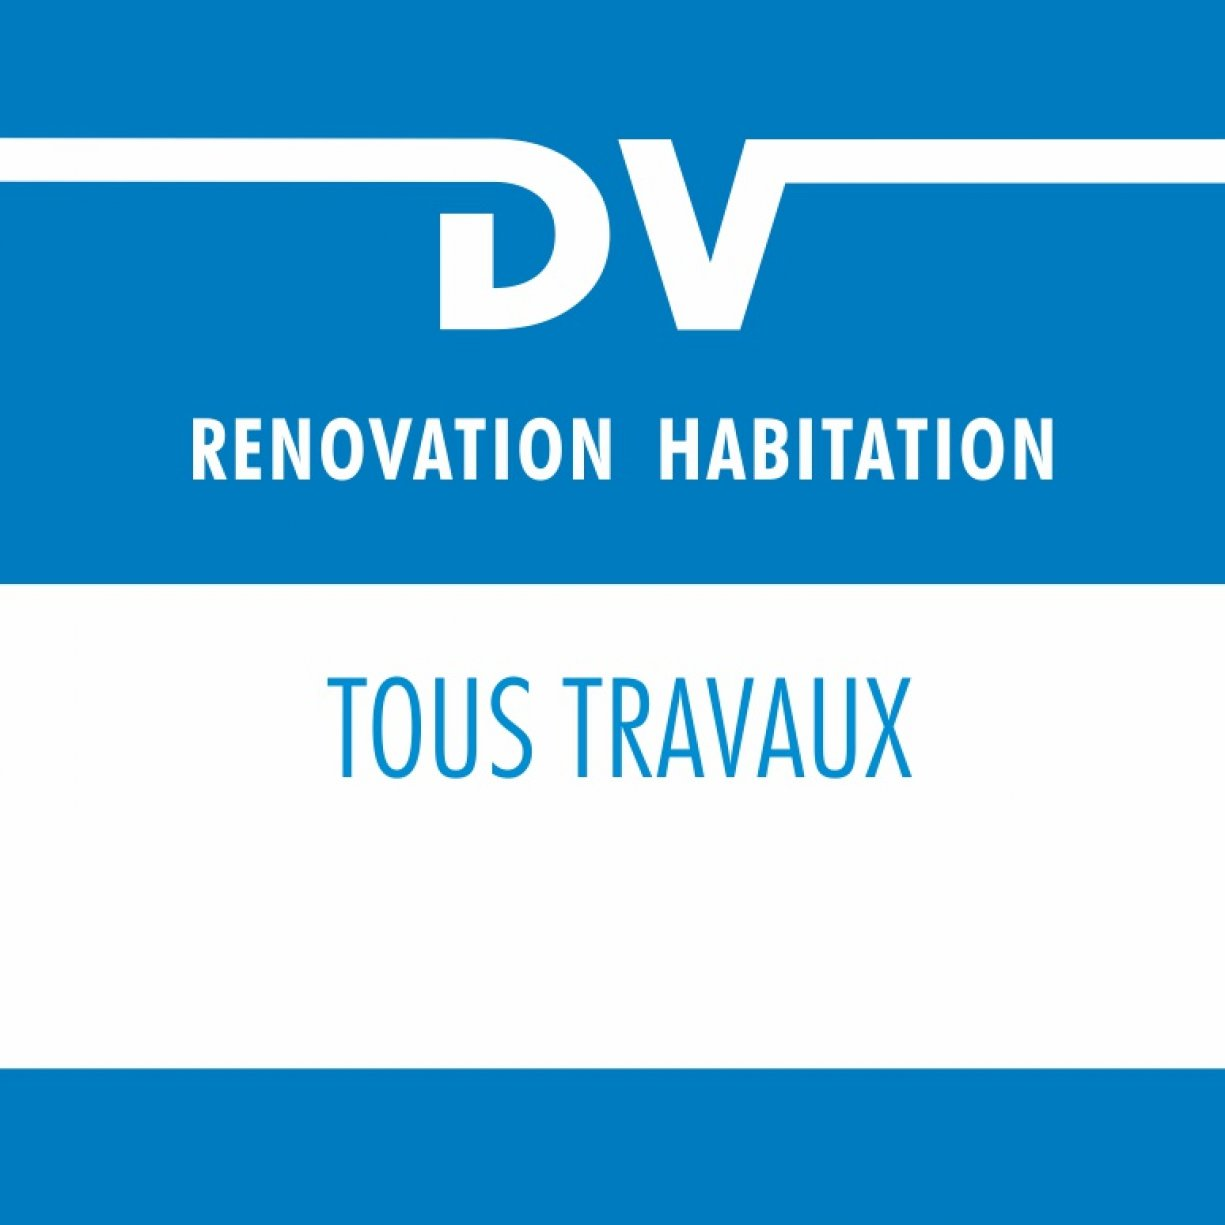 Dv renovation habitation